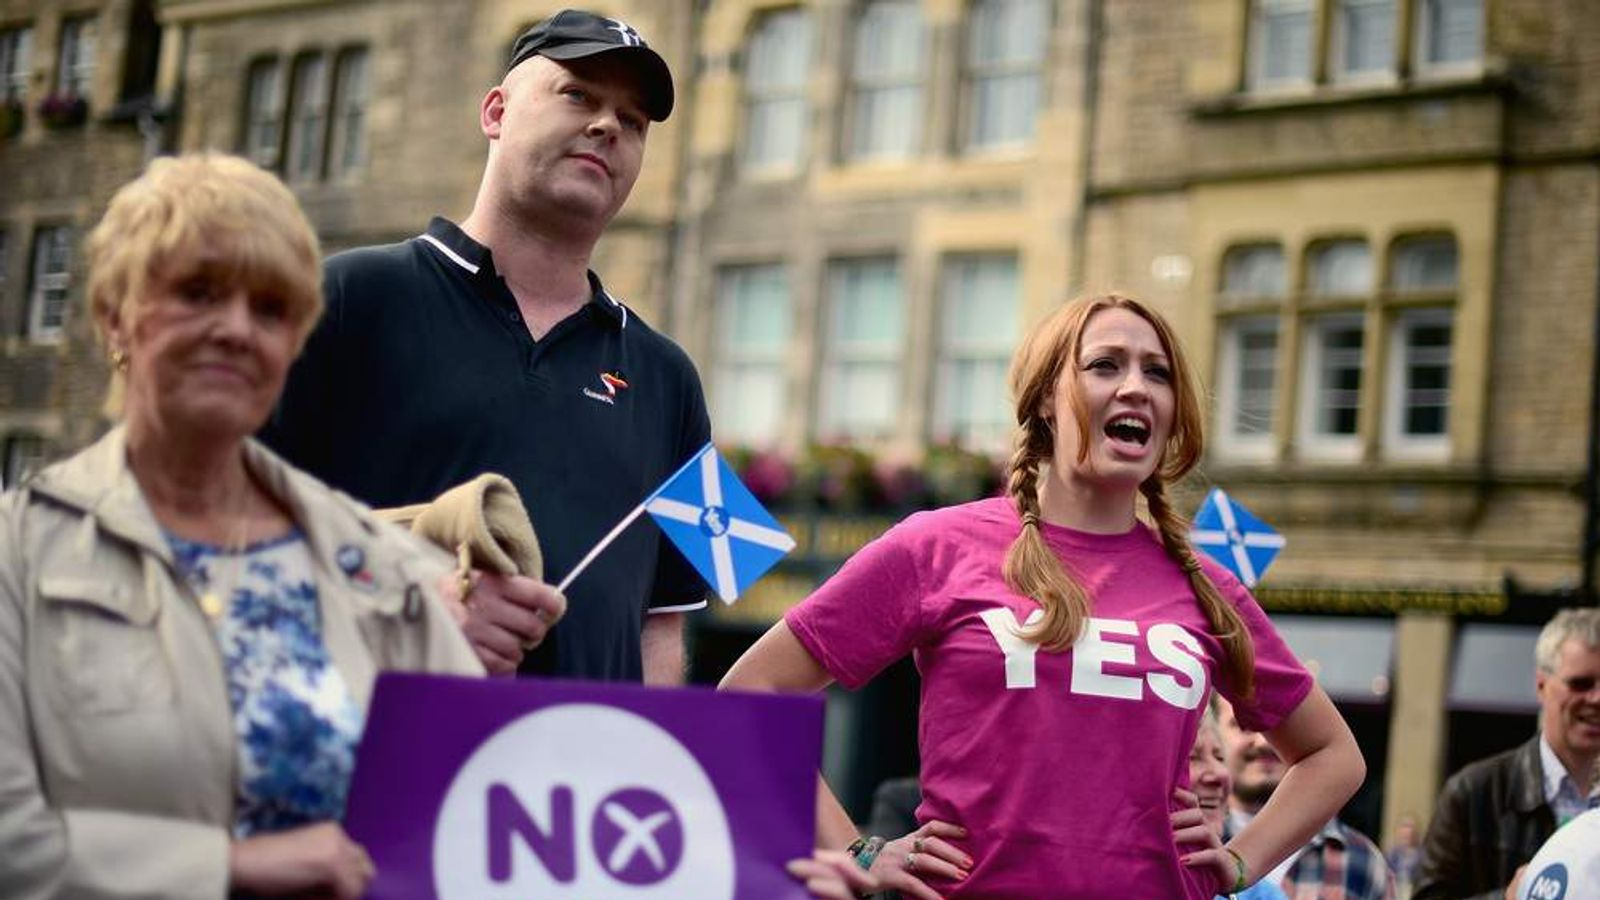 Recent Polls Show The Yes Campaign Edging Ahead.